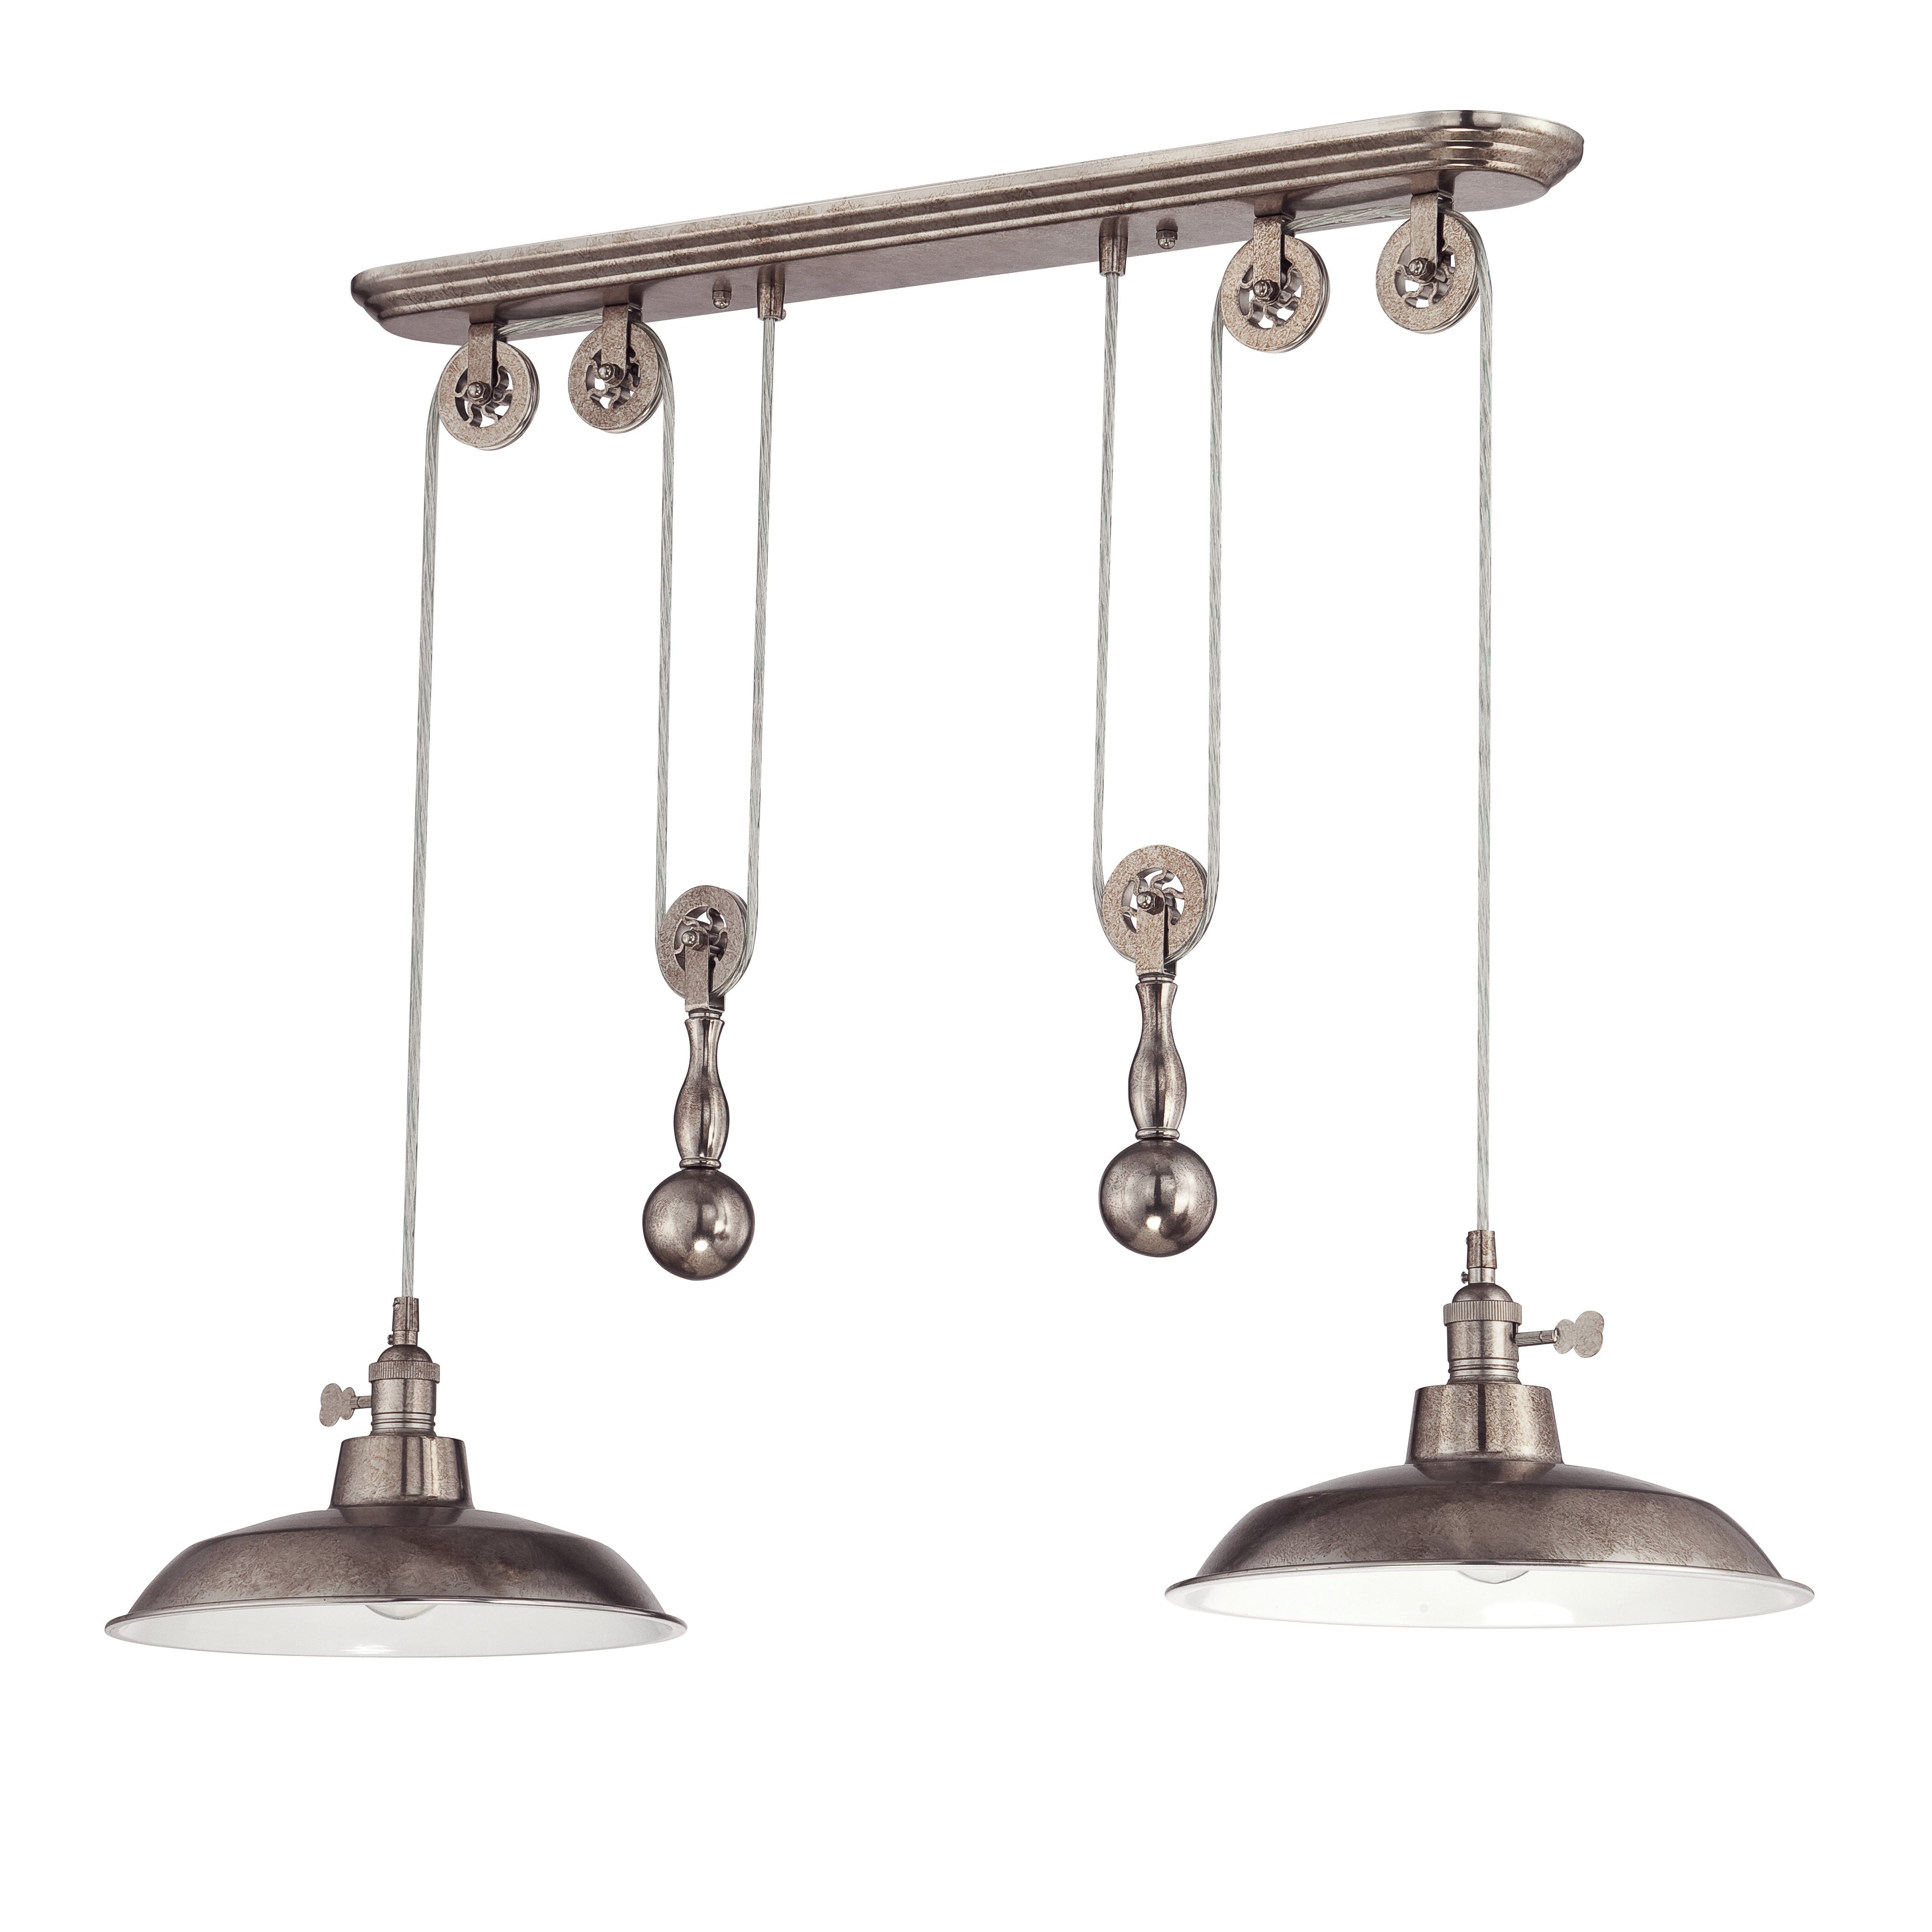 Ariel 3 Light Kitchen Island Dome Pendants For Favorite Ariel 2 Light Kitchen Island Dome Pendant (View 3 of 20)